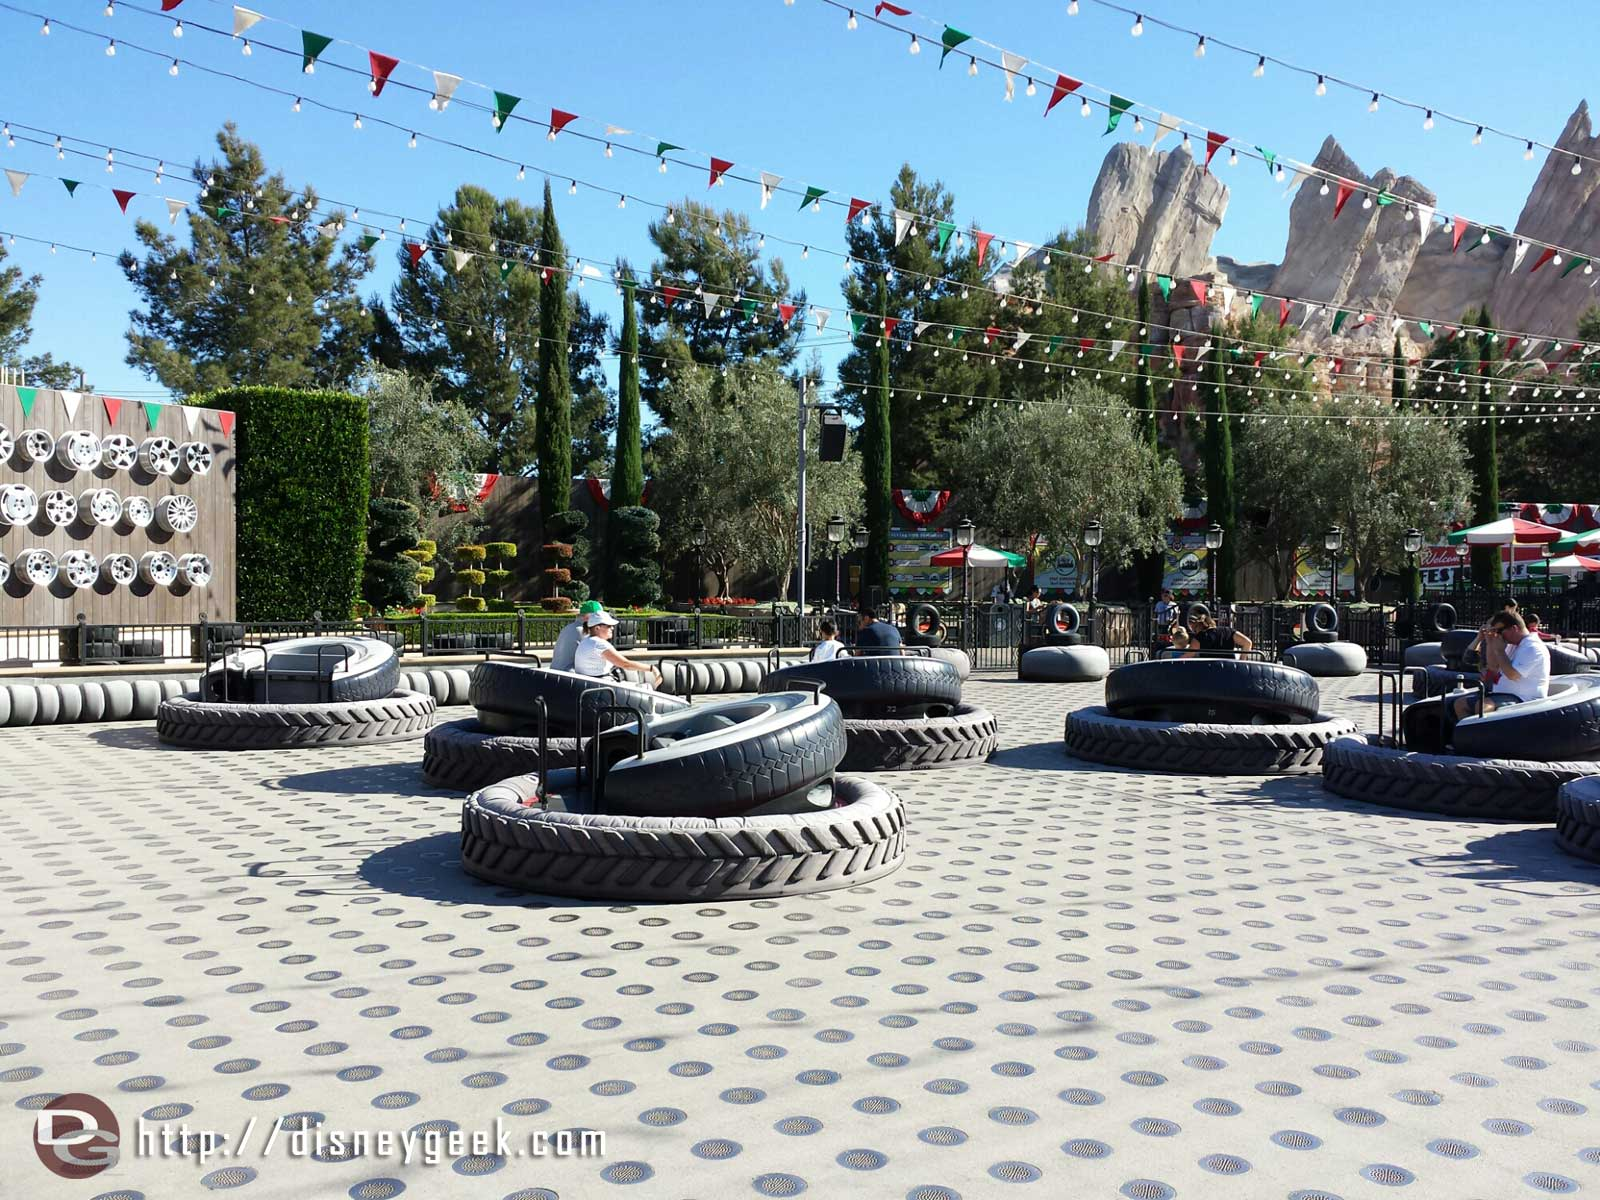 Went for a flight on the Flying Tires, no wait. The cycle before me had more empty than with guests #CarsLand